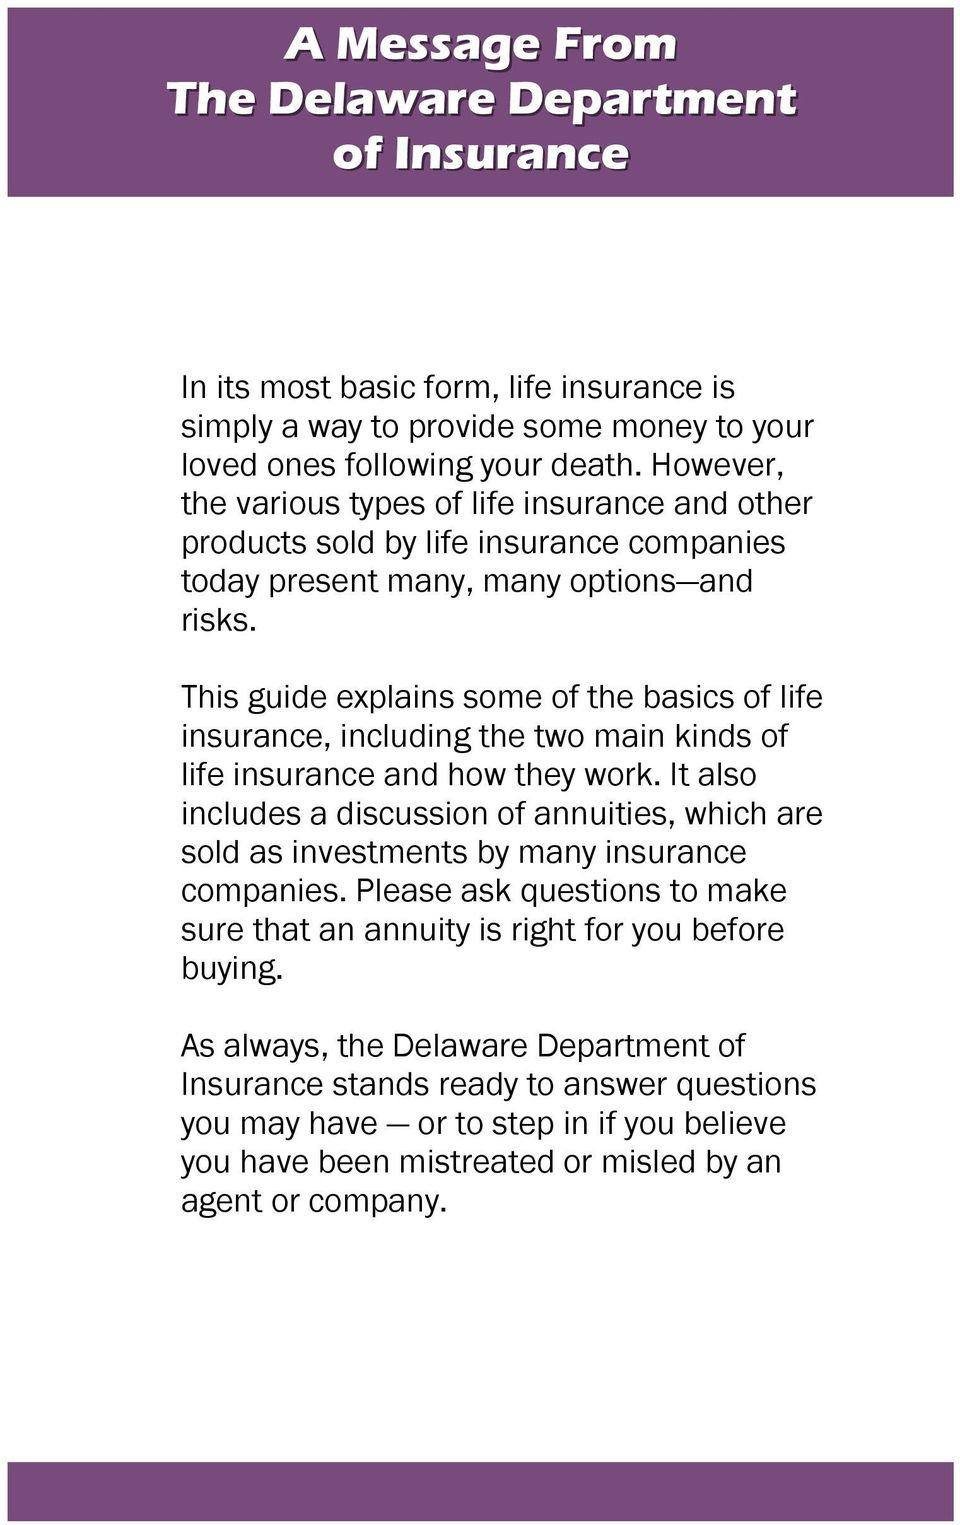 This guide explains some of the basics of life insurance, including the two main kinds of life insurance and how they work.